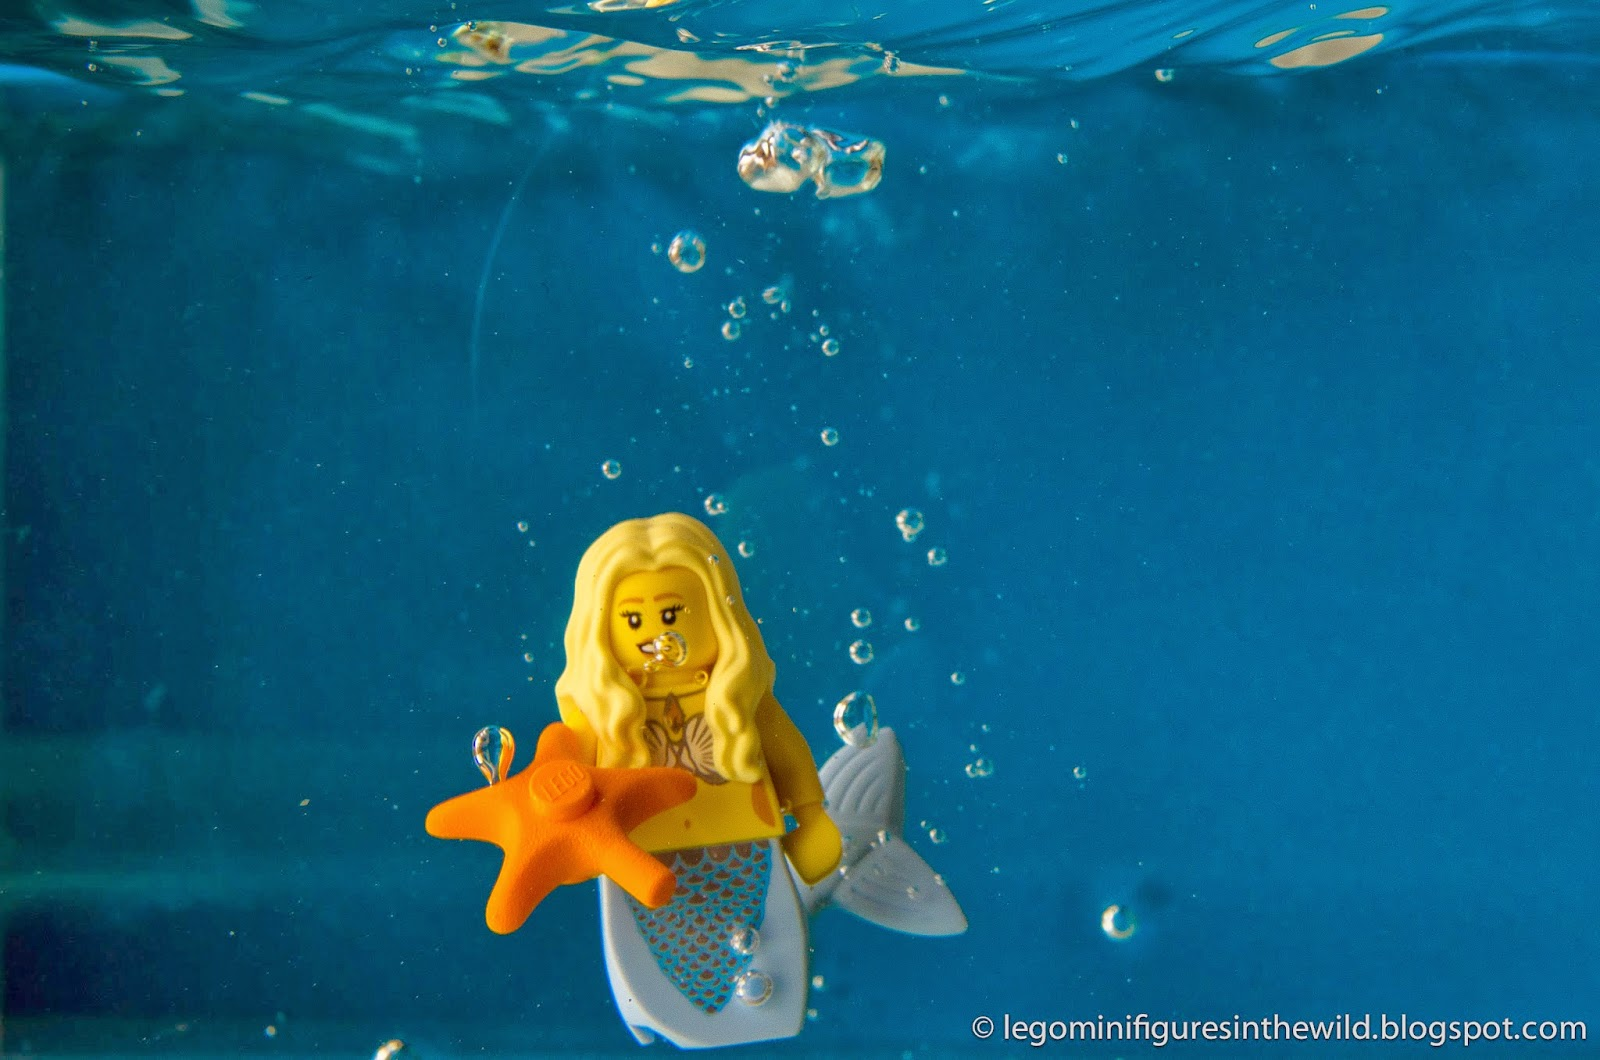 Lego Minifigure Series 9 Mermaid - Wallpaper